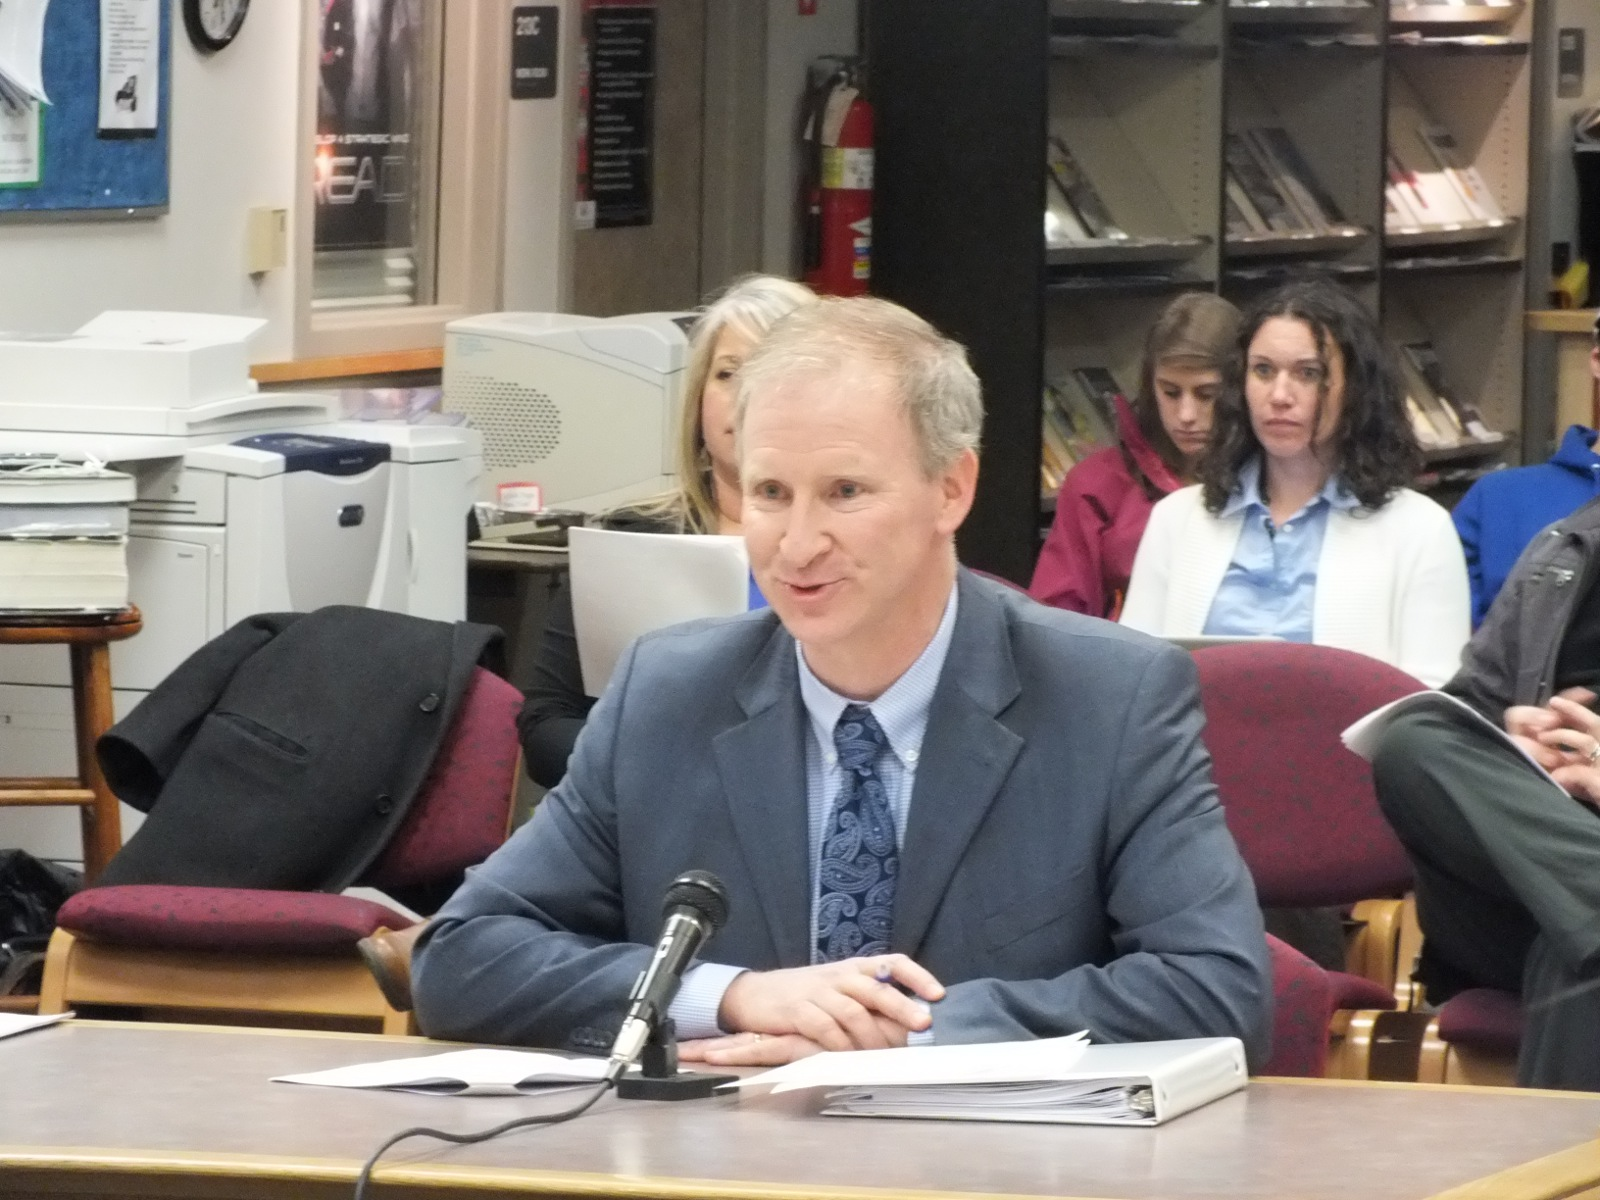 Brian Holst co-chaired the Juneau School District Budget Committee this year. He presented the committee's recommendations to the school board Tuesday night. (Photo by Casey Kelly/KTOO)